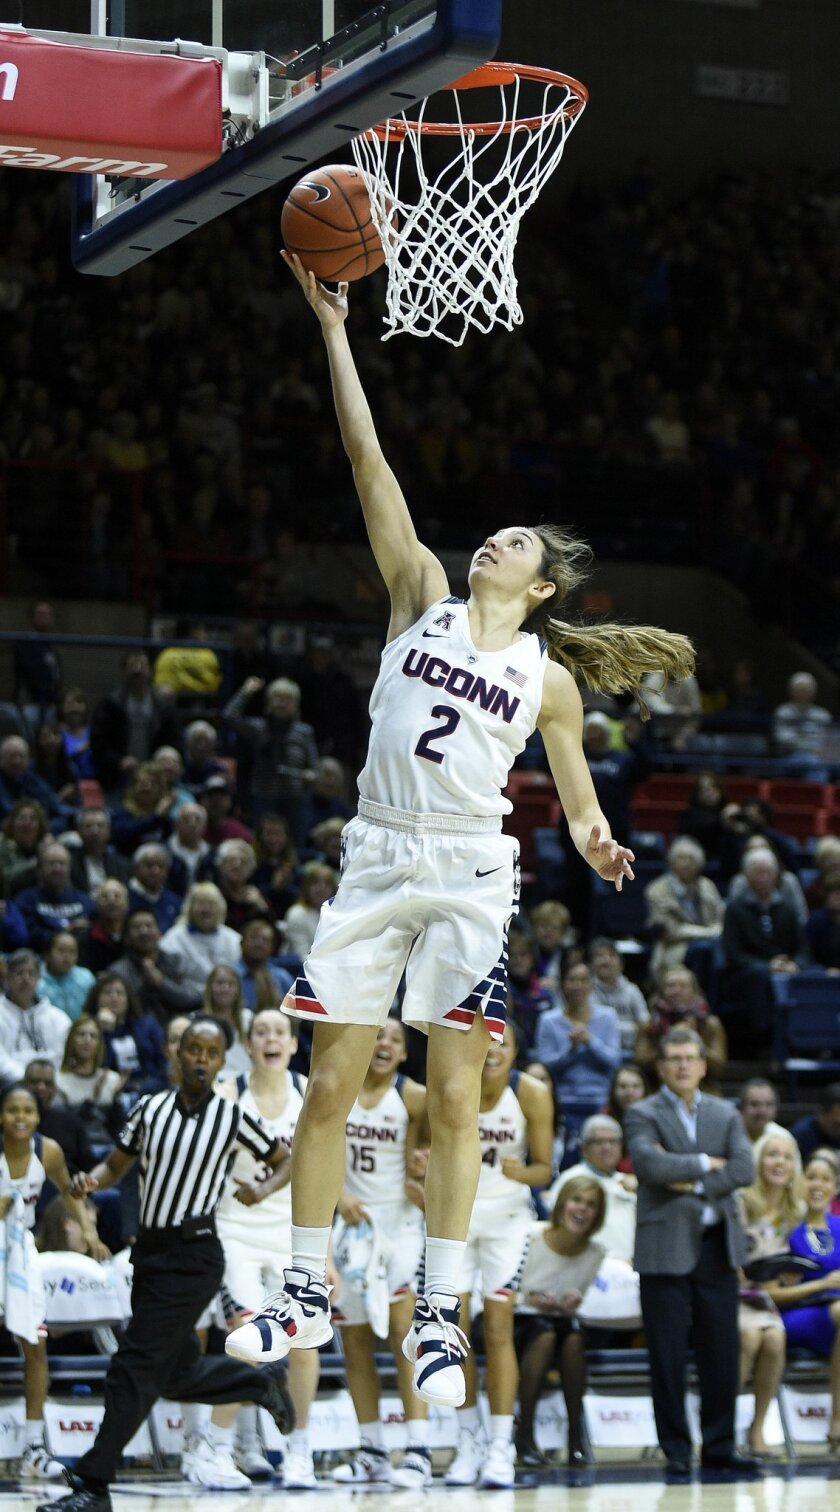 Connecticut's Briana Pulido (2) scores during the second half of Connecticut's 92-46 victory over East Carolina in an NCAA college basketball game in Storrs, Conn., on Saturday, Feb. 6, 2016. (AP Photo/Fred Beckham)